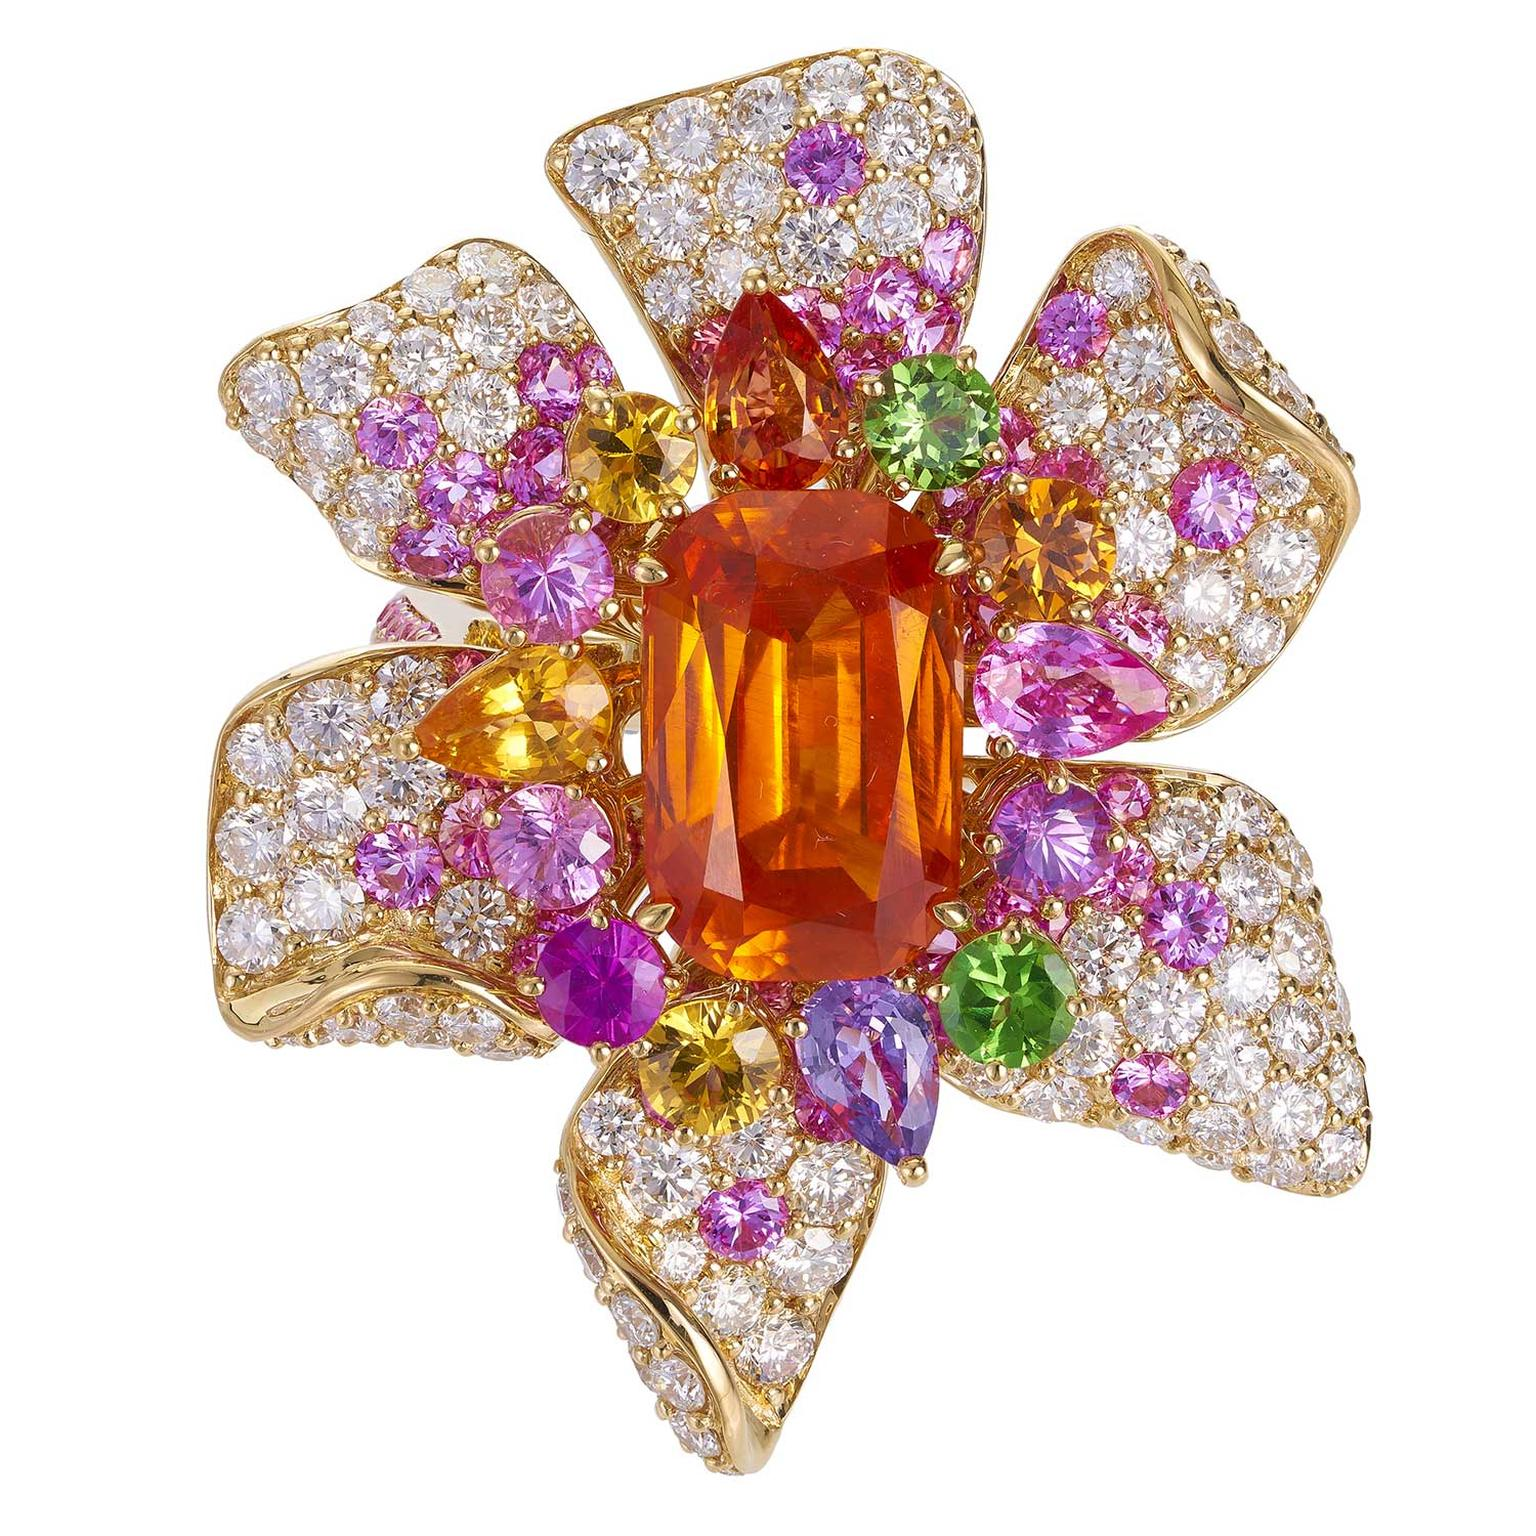 Margot McKinney mandarin garnet flower ring